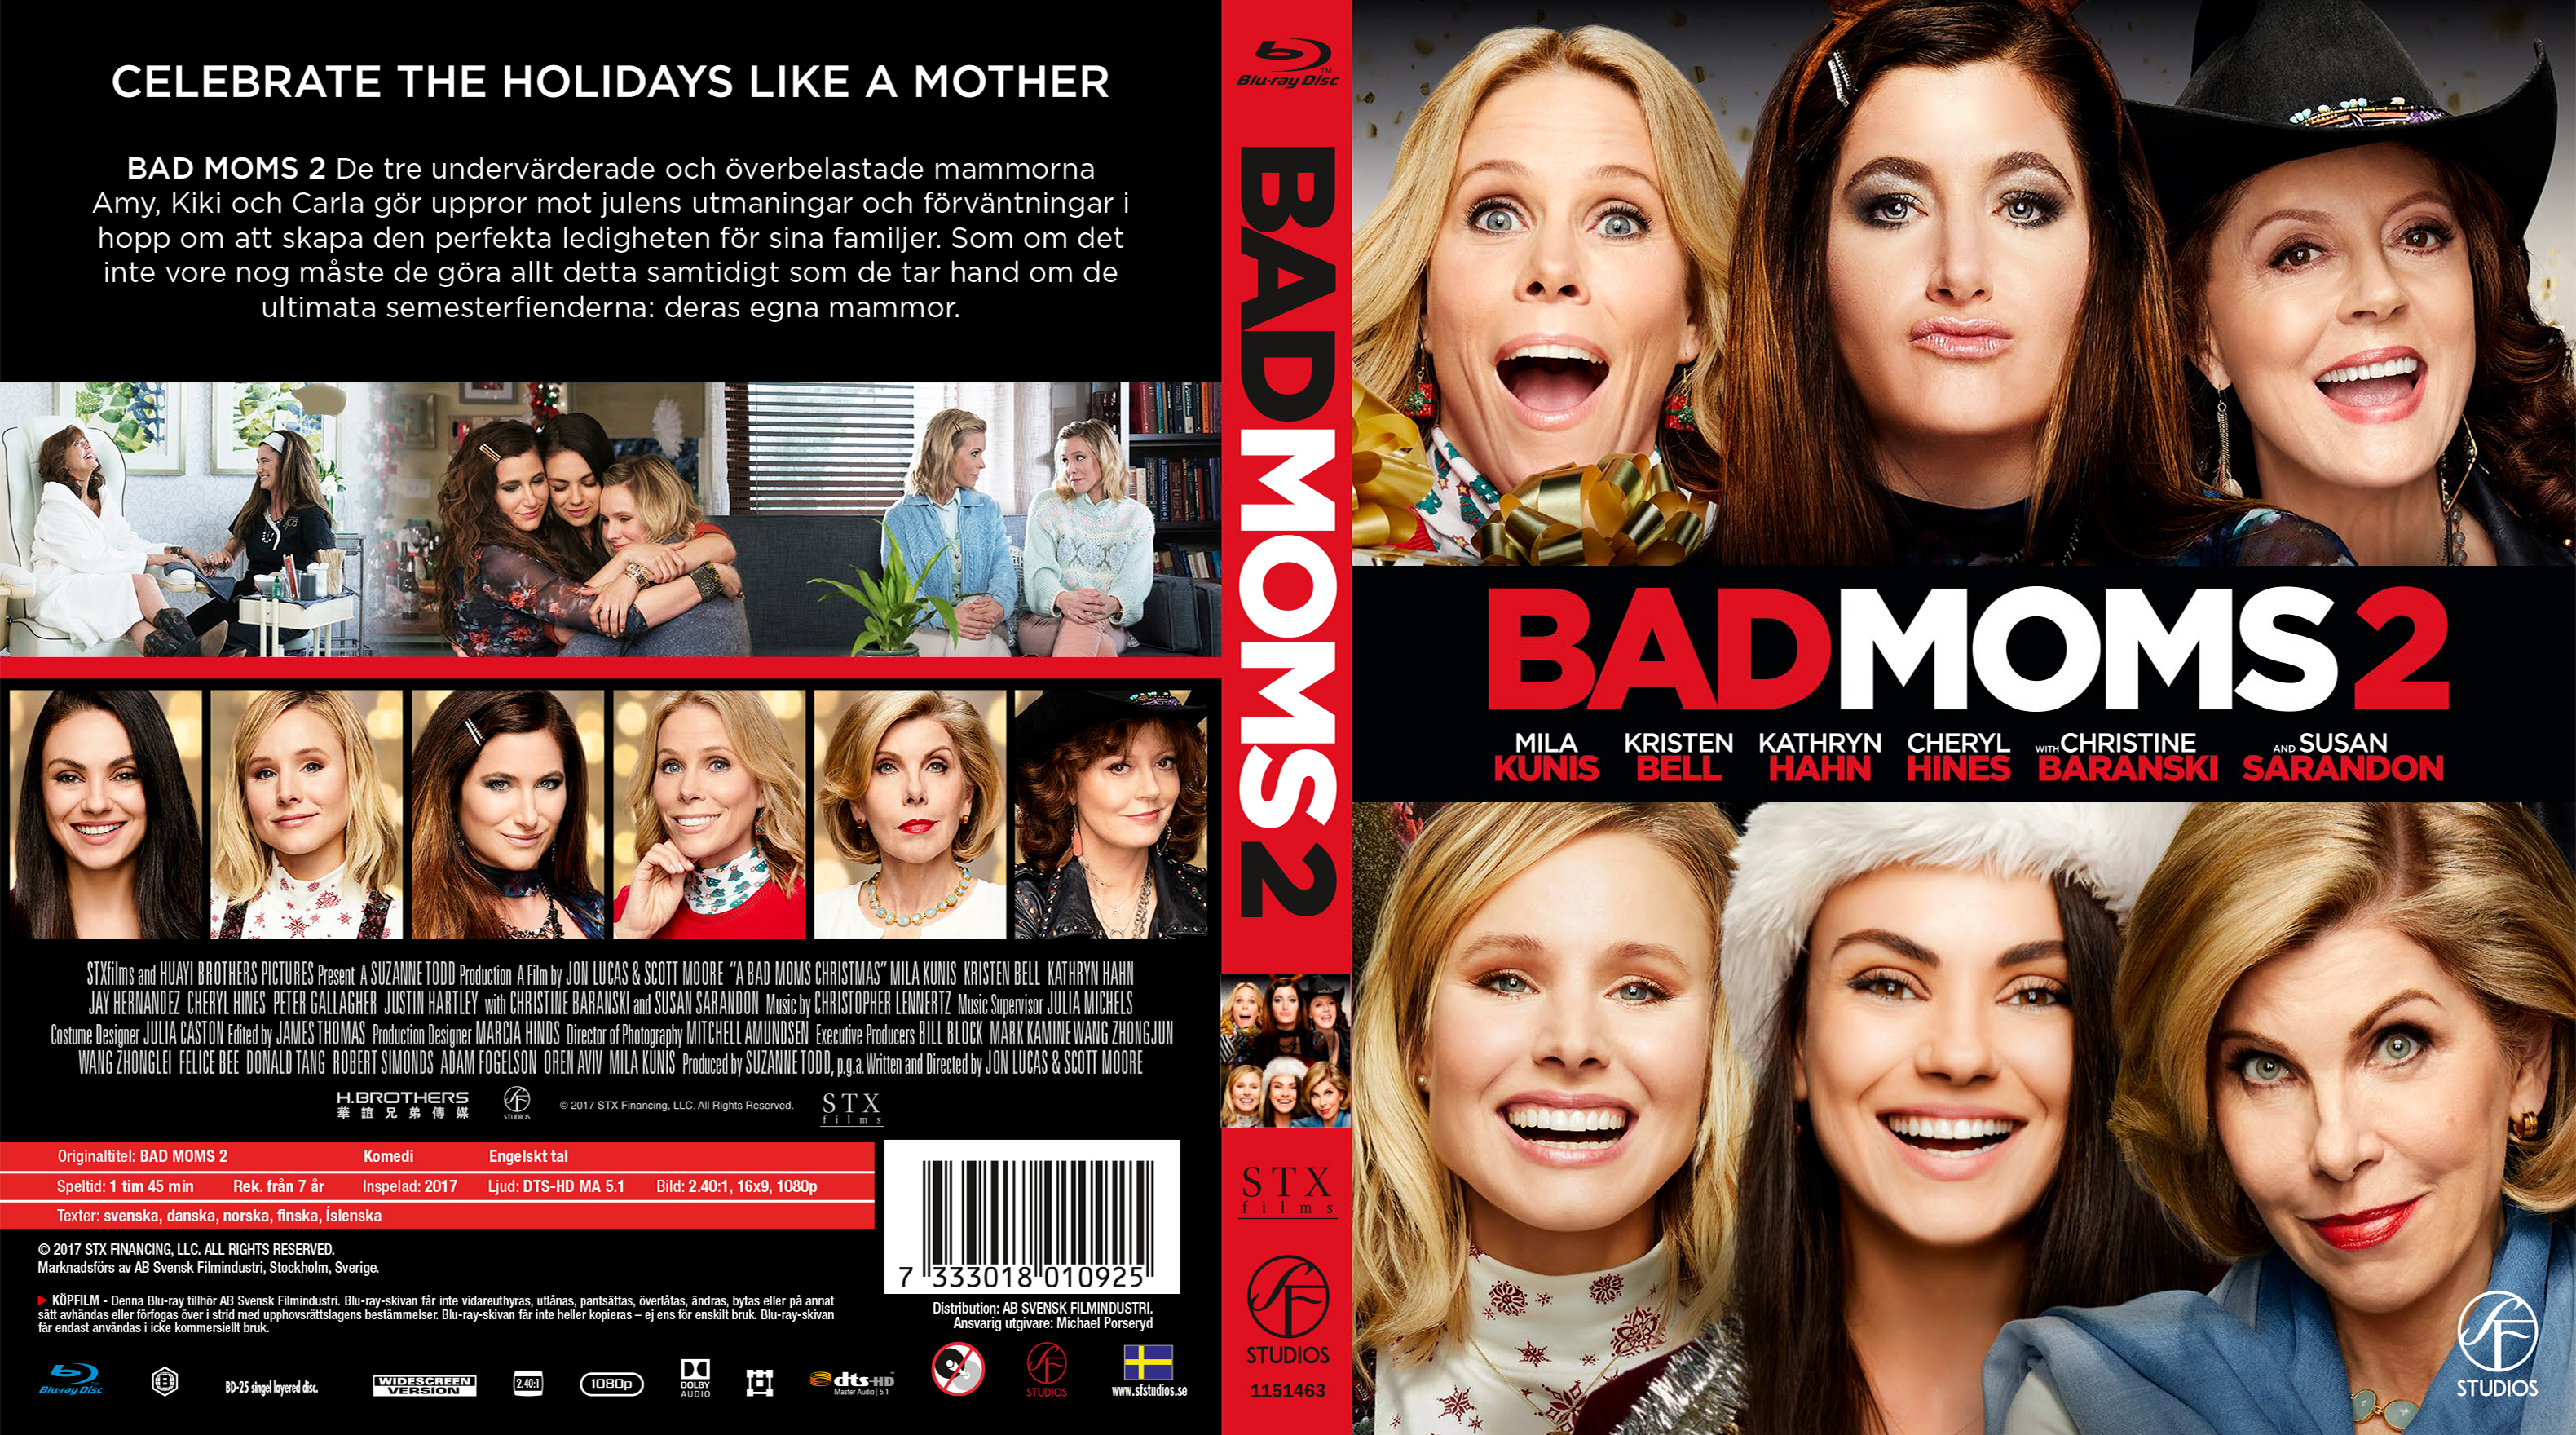 A Bad Moms Christmas Dvd Cover.Covers Box Sk A Bad Moms Christmas Bad Moms 2 Blu